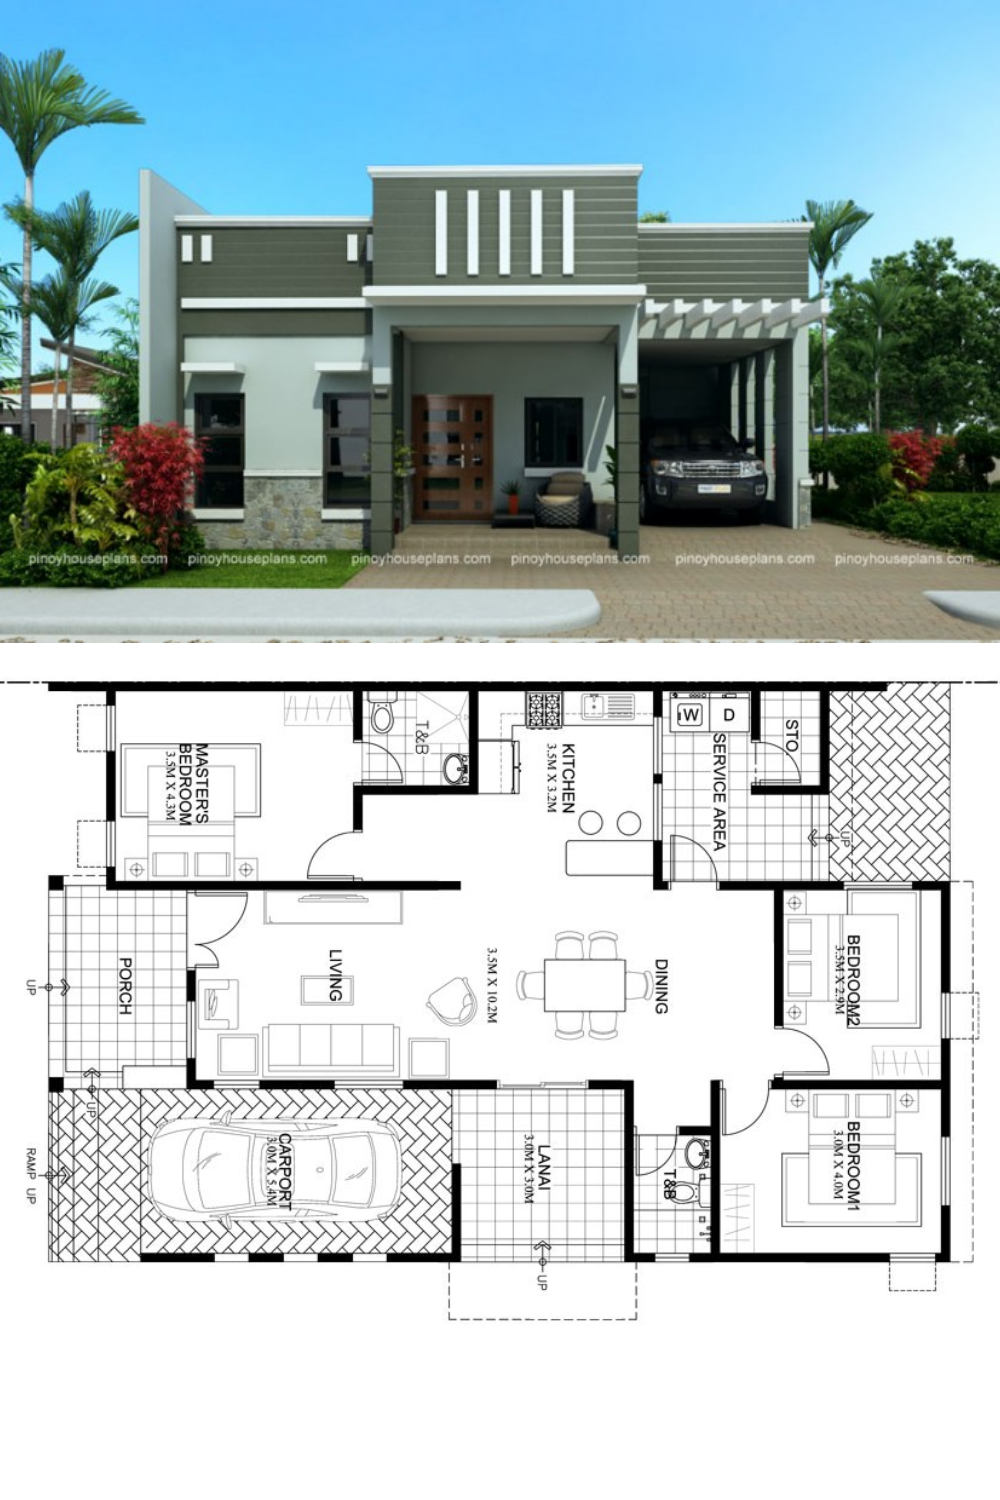 One Story Dream House Plan With Parapet Design Roof Architect Design House House Plan Gallery Dream House Plans